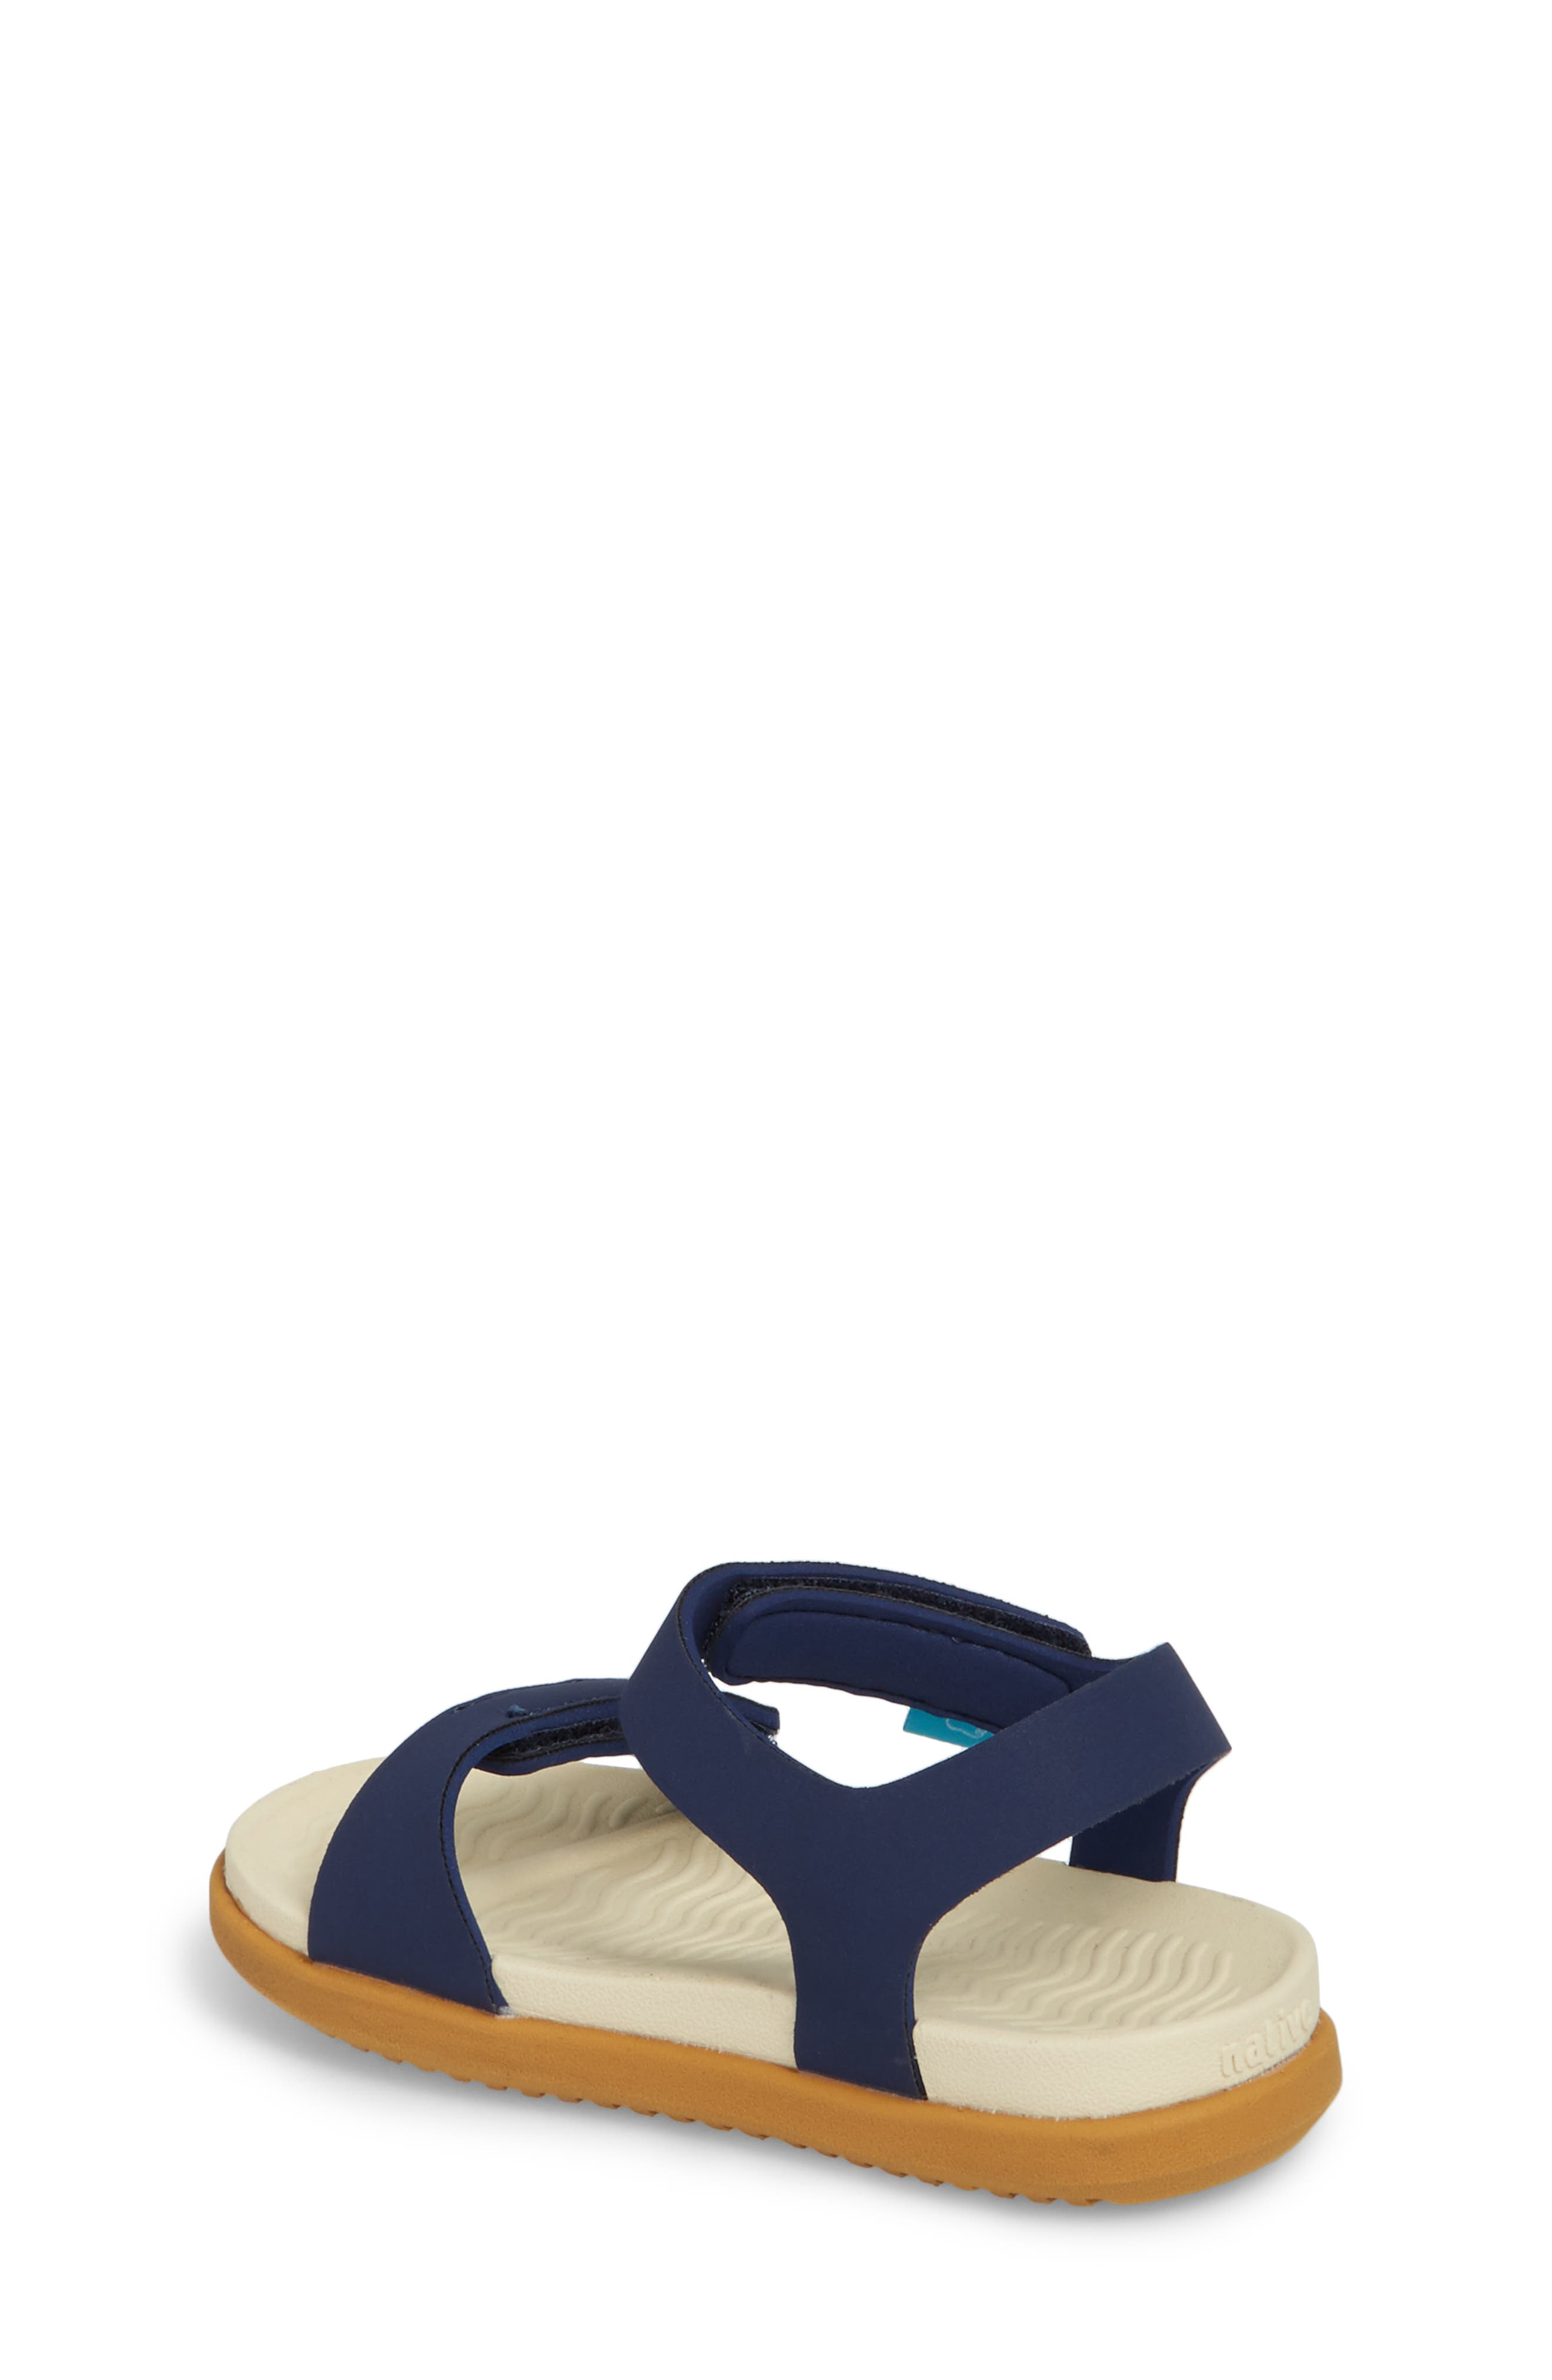 Charley Child Waterproof Flat Sandal,                             Alternate thumbnail 2, color,                             BLUE/ BONE WHITE/ TOFFEE